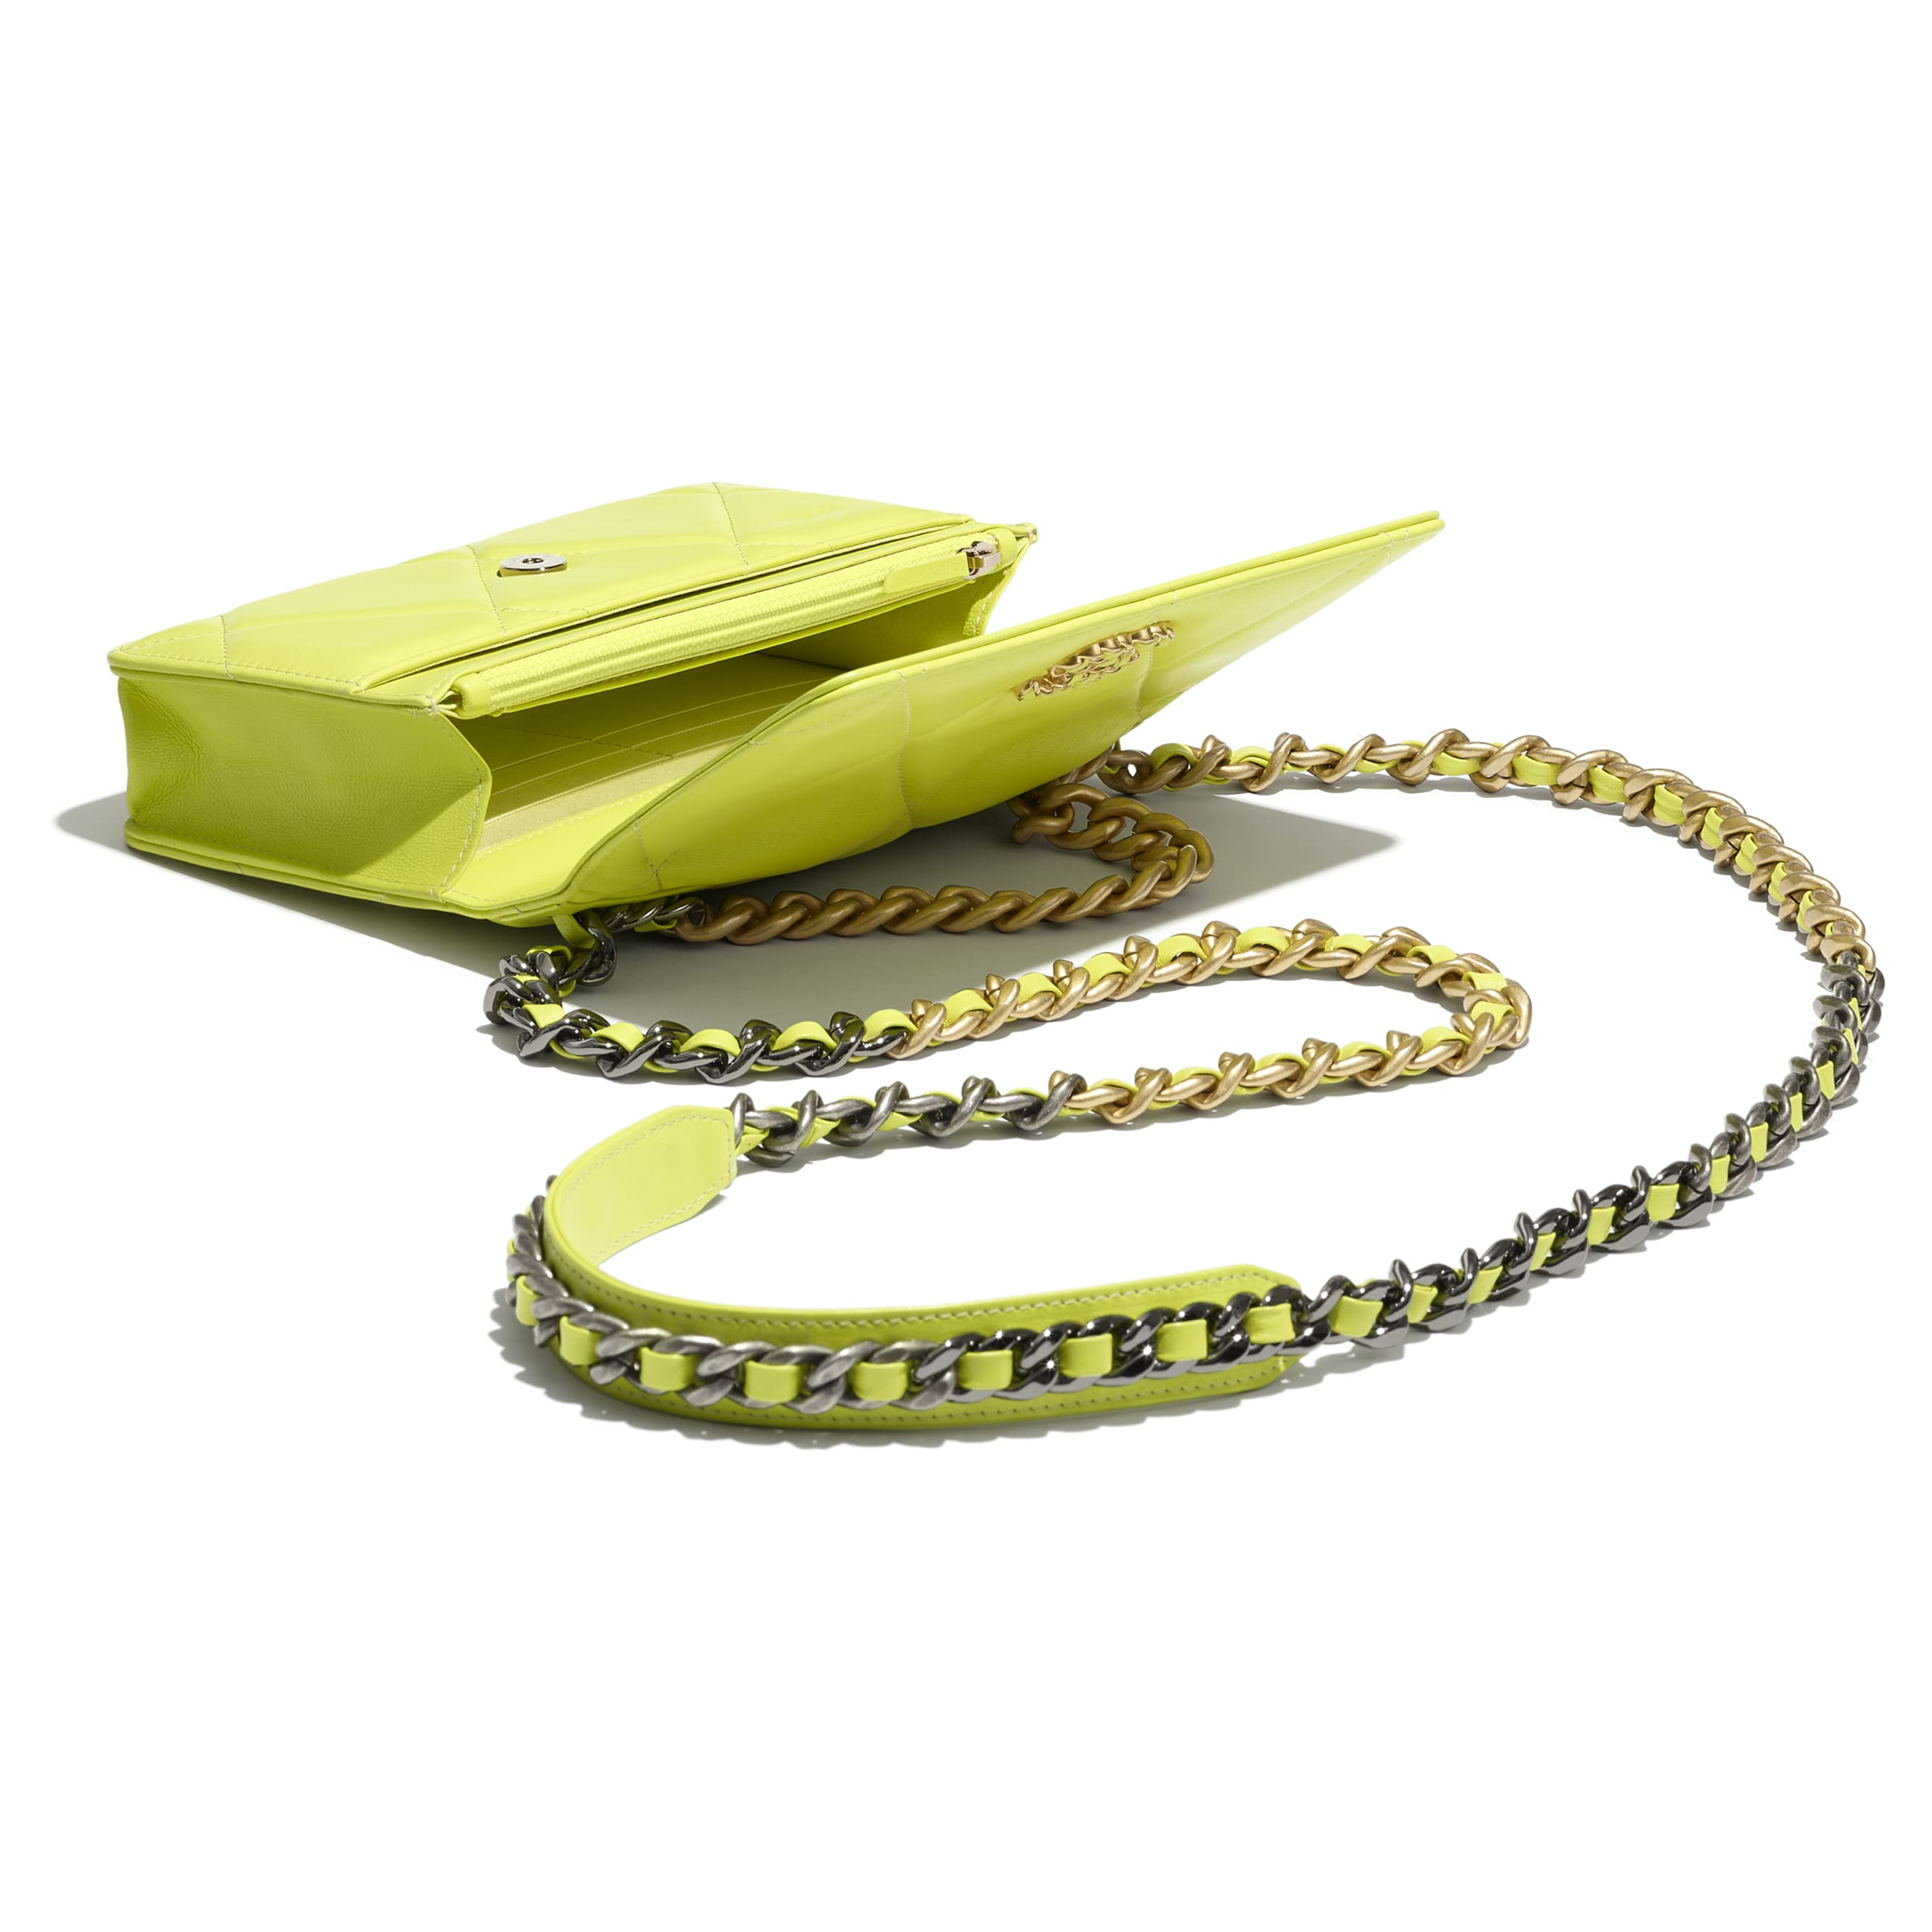 CHANEL 19 Wallet on Chain - Neon Yellow - Shiny Lambskin, Gold-Tone, Silver-Tone & Ruthenium-Finish Metal - CHANEL - Other view - see standard sized version